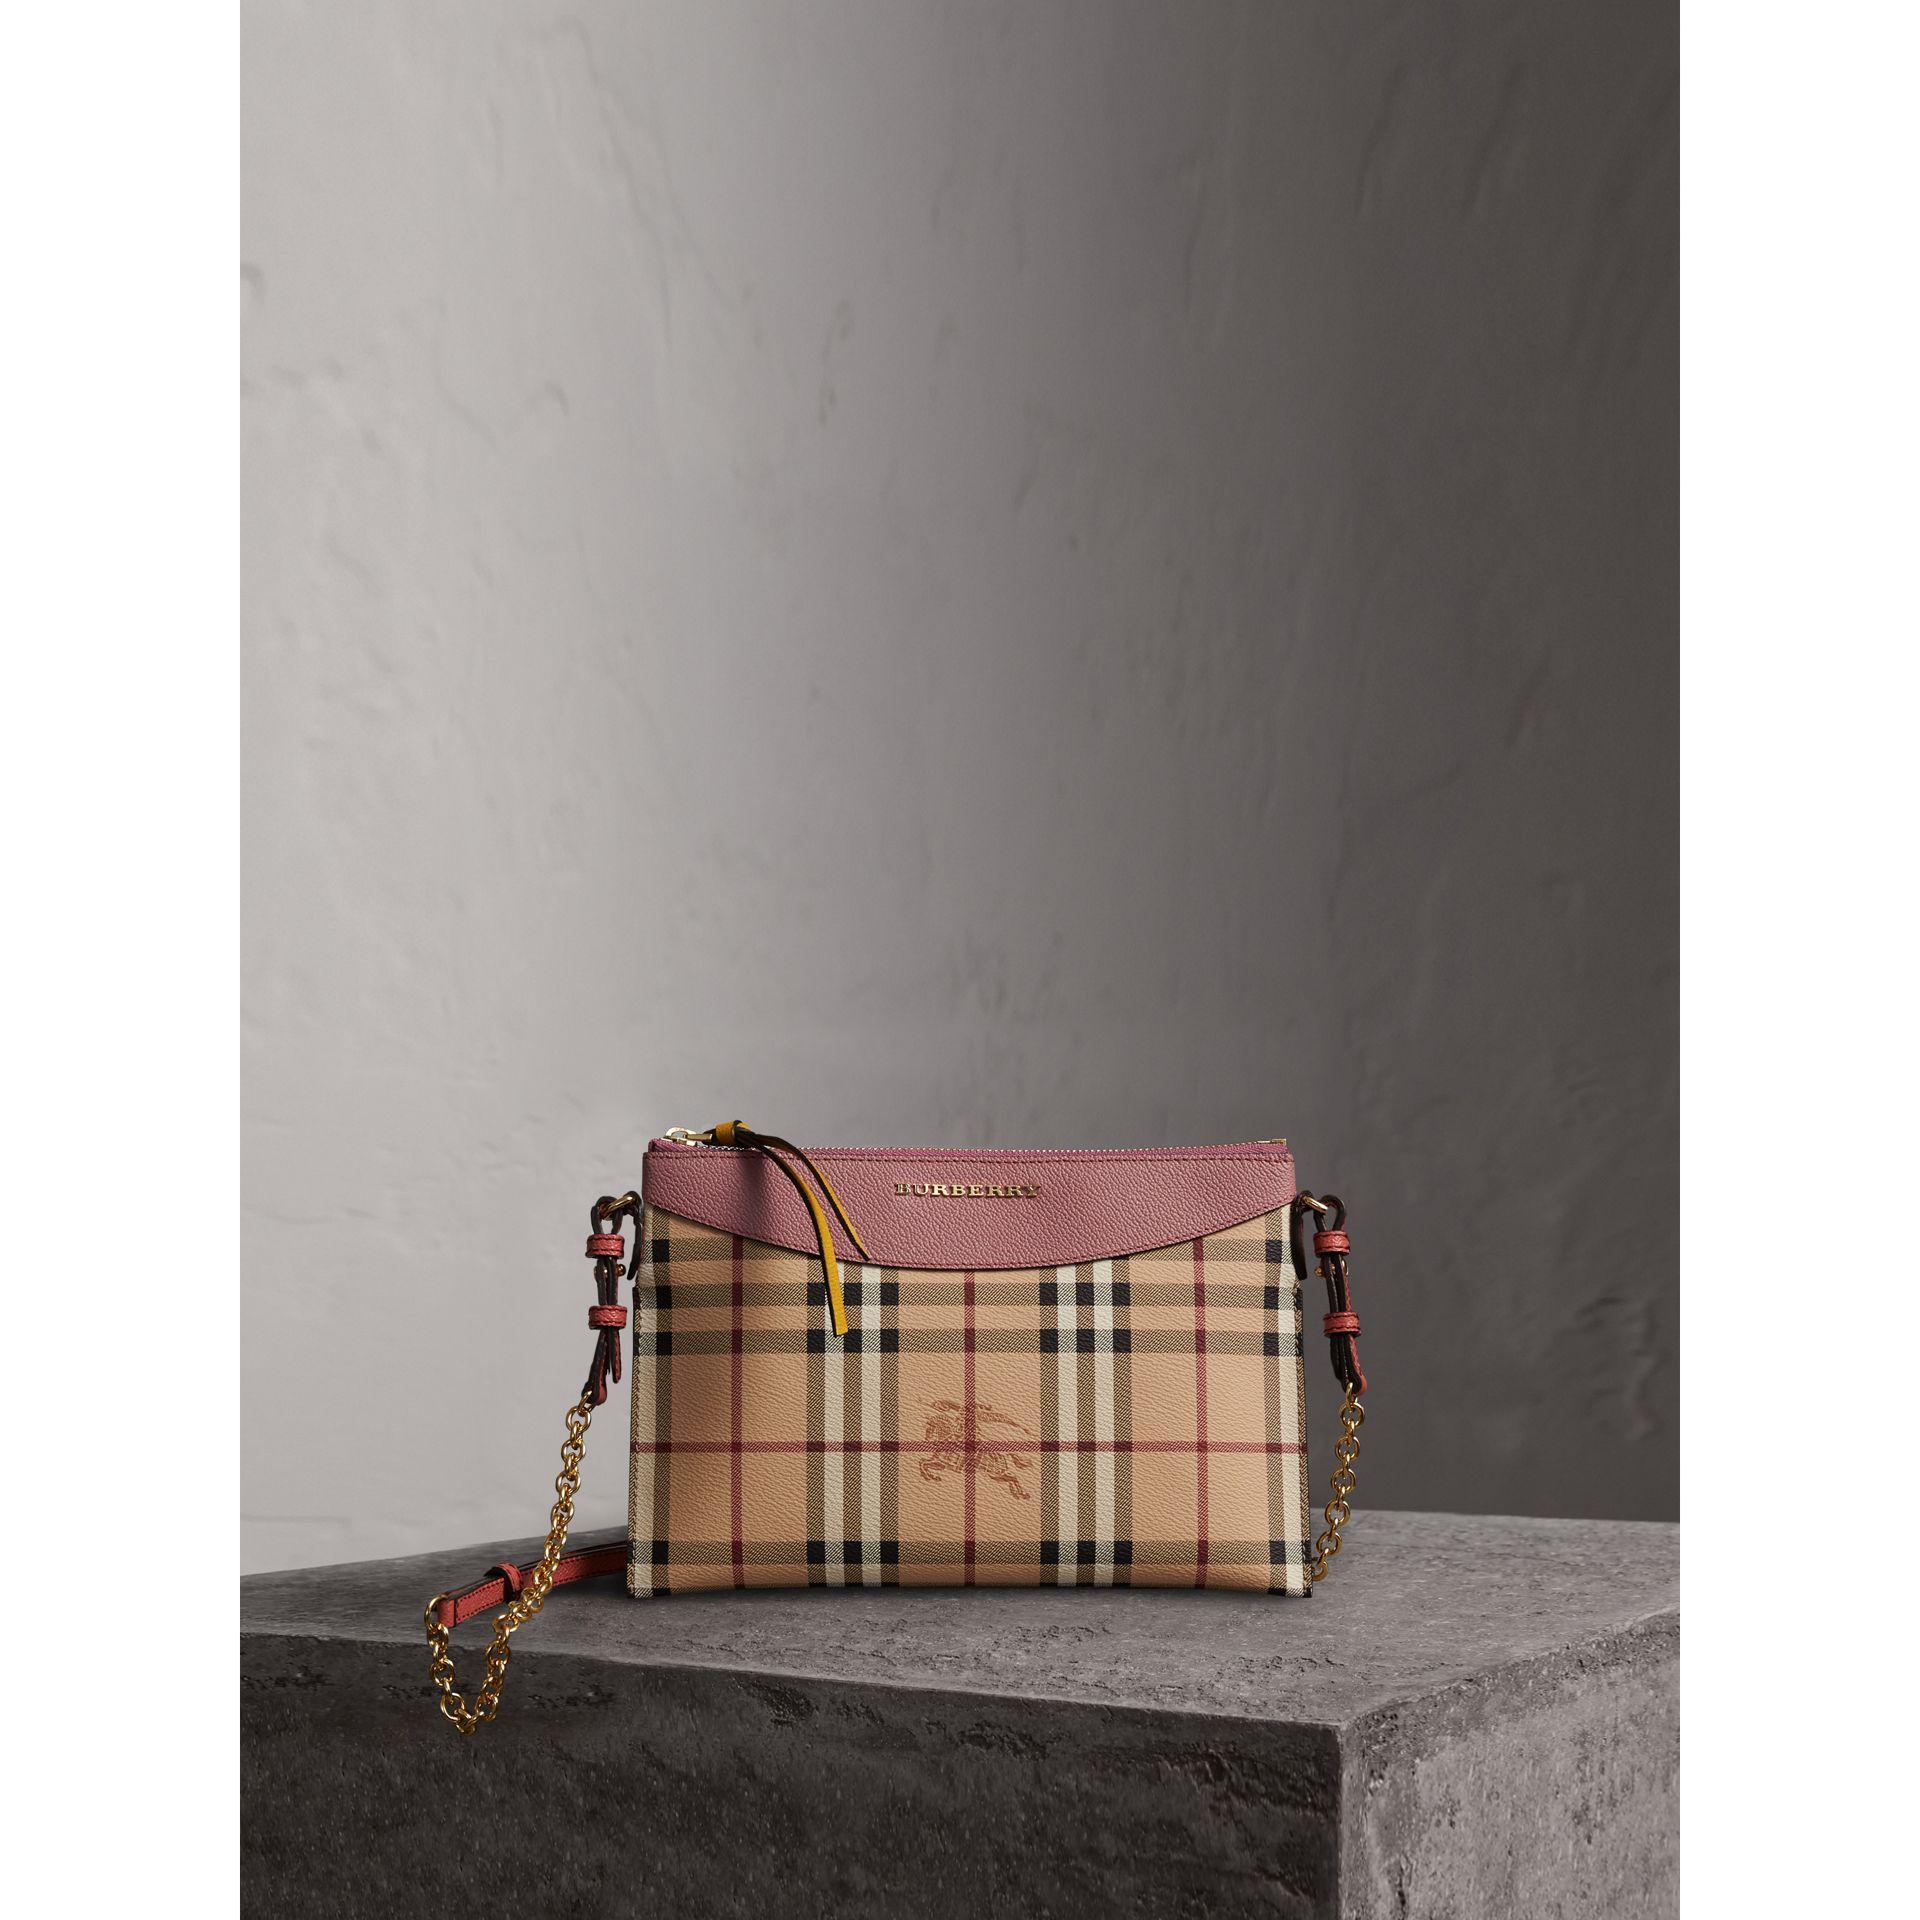 Haymarket Check and Two-tone Leather Clutch Bag in Dusty Pink/multicolour - Women | Burberry - gallery image 7